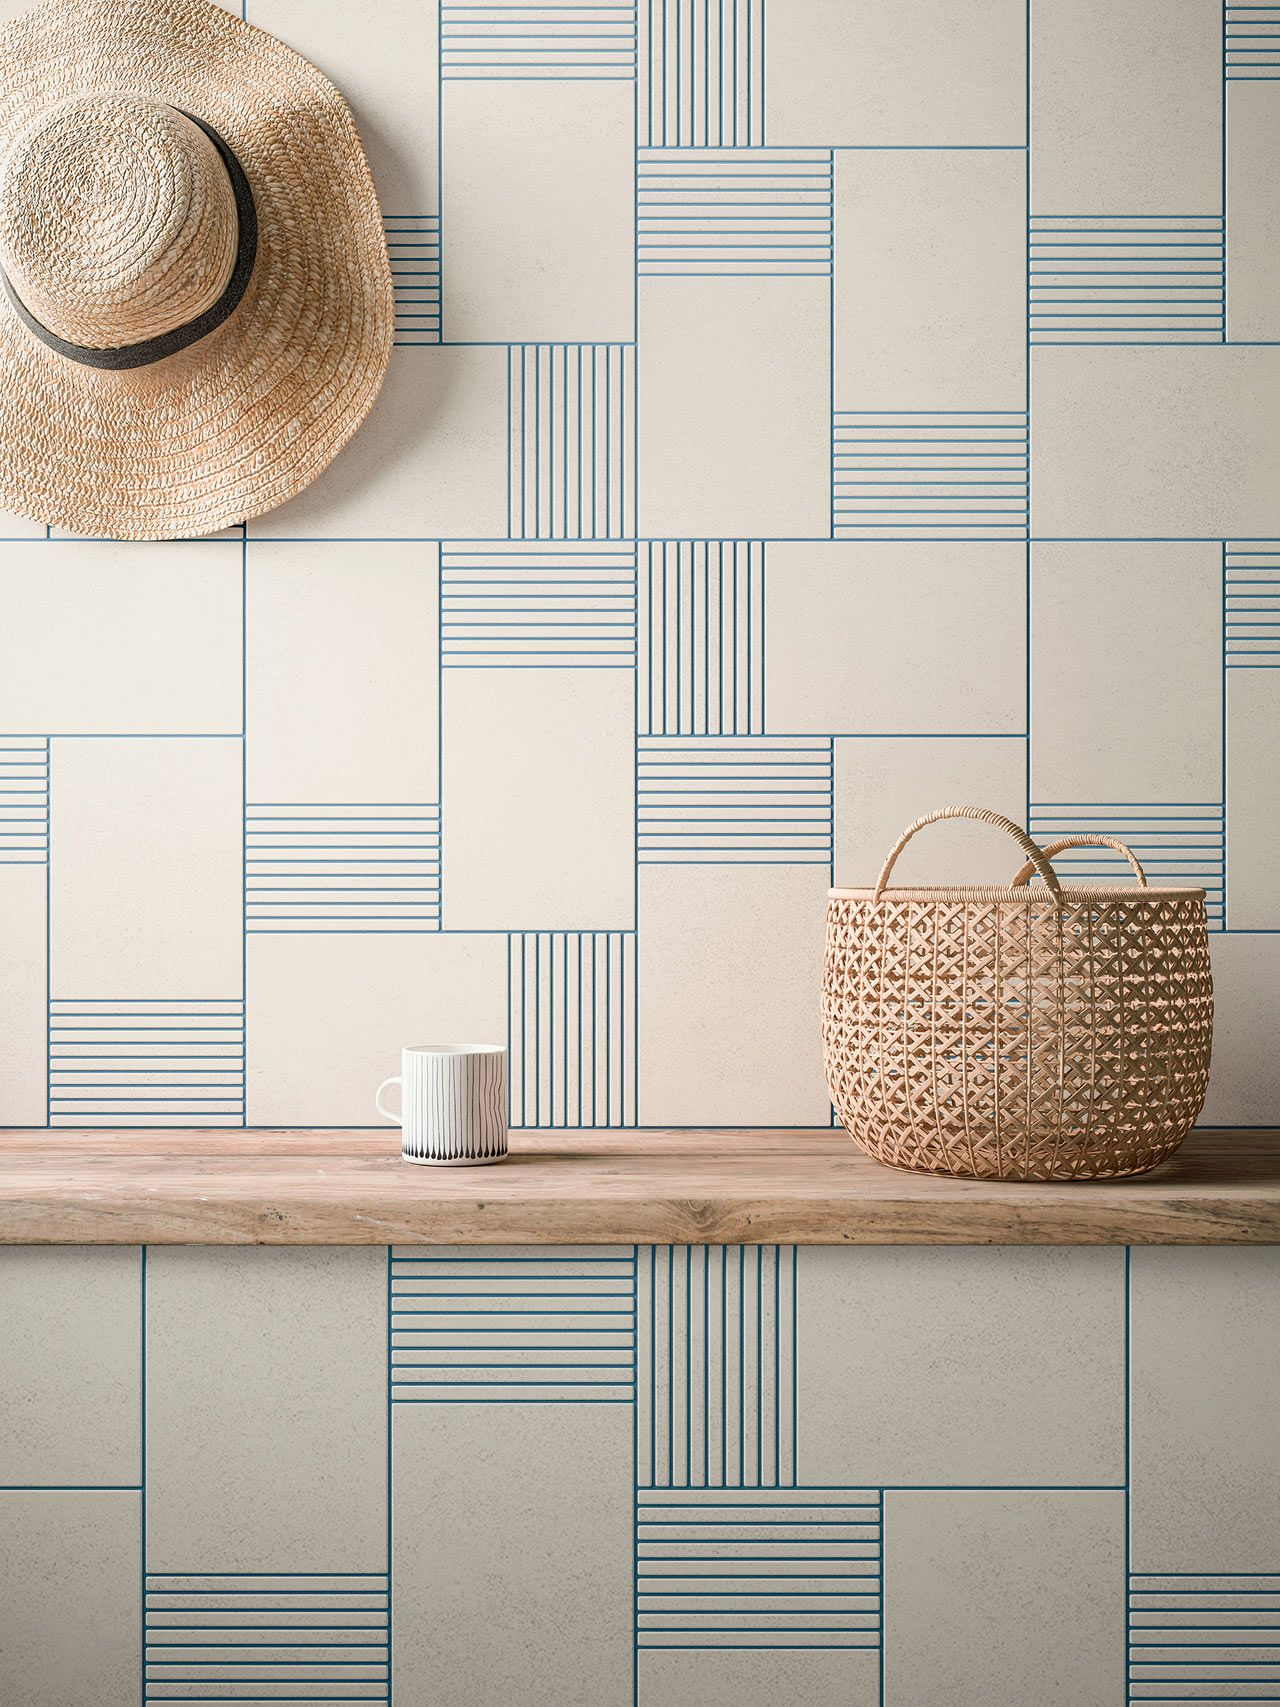 Cava Graphic Tile Collection by LucidiPevere for Living Ceramics ...